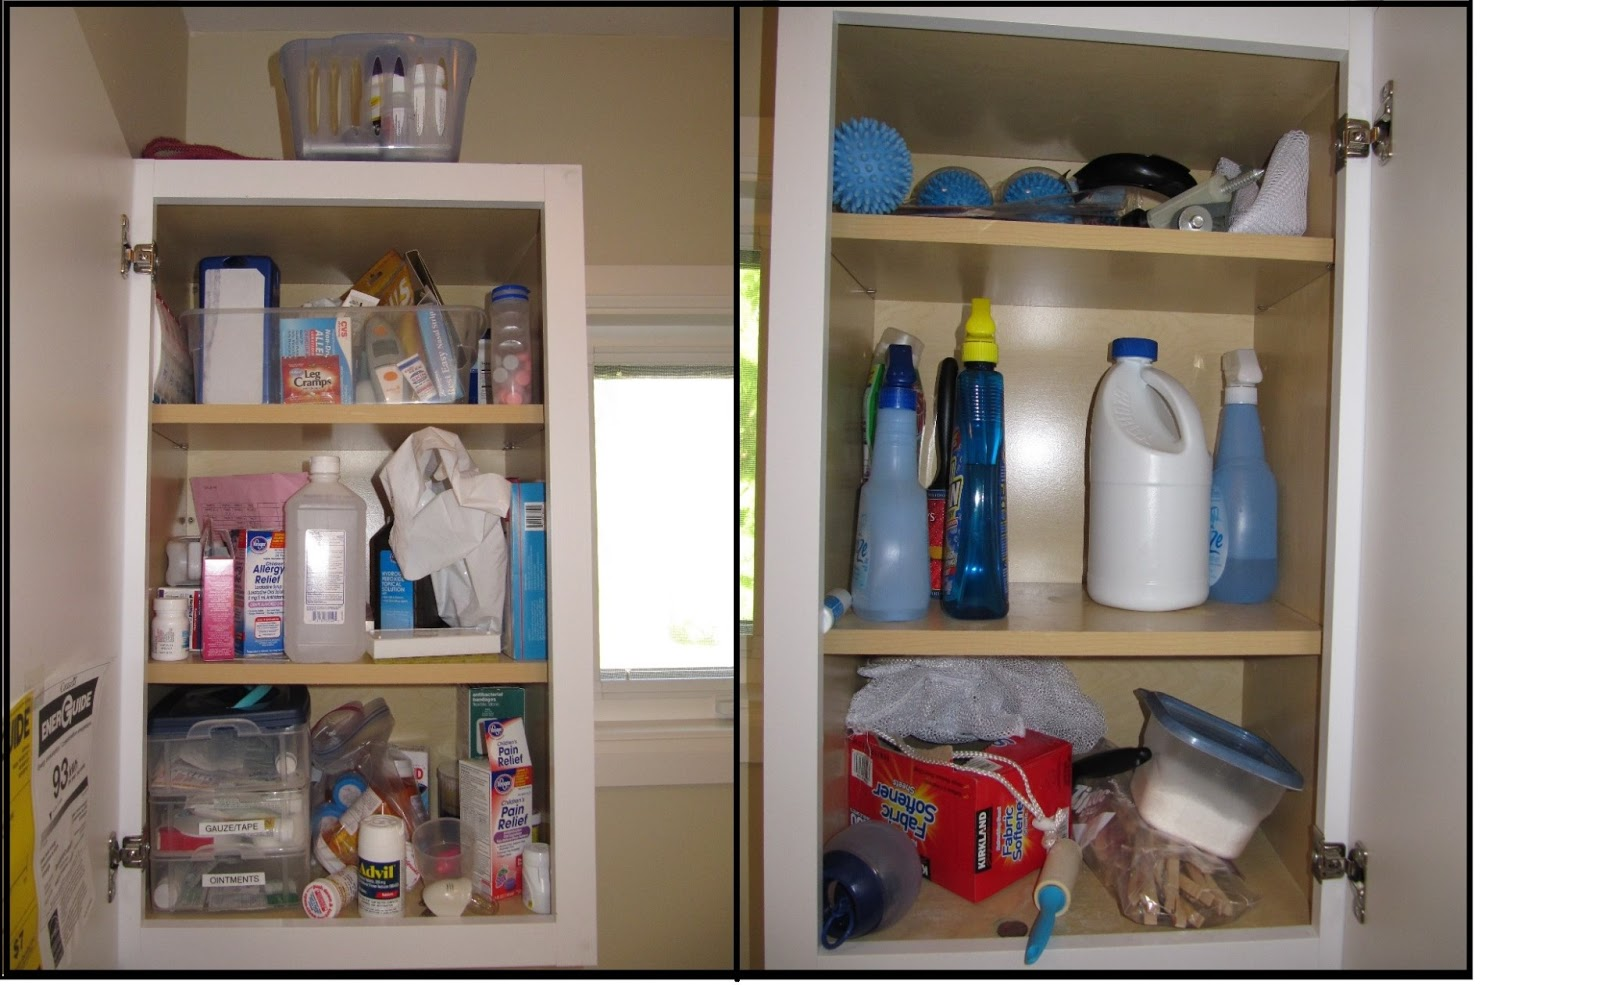 The left-hand side cabinet we use for storing medications and first-aid supplies; the right-hand side cabinet is used for detergent stain remover ... & everyday organizing: An Organized Laundry Room Making Over the ...